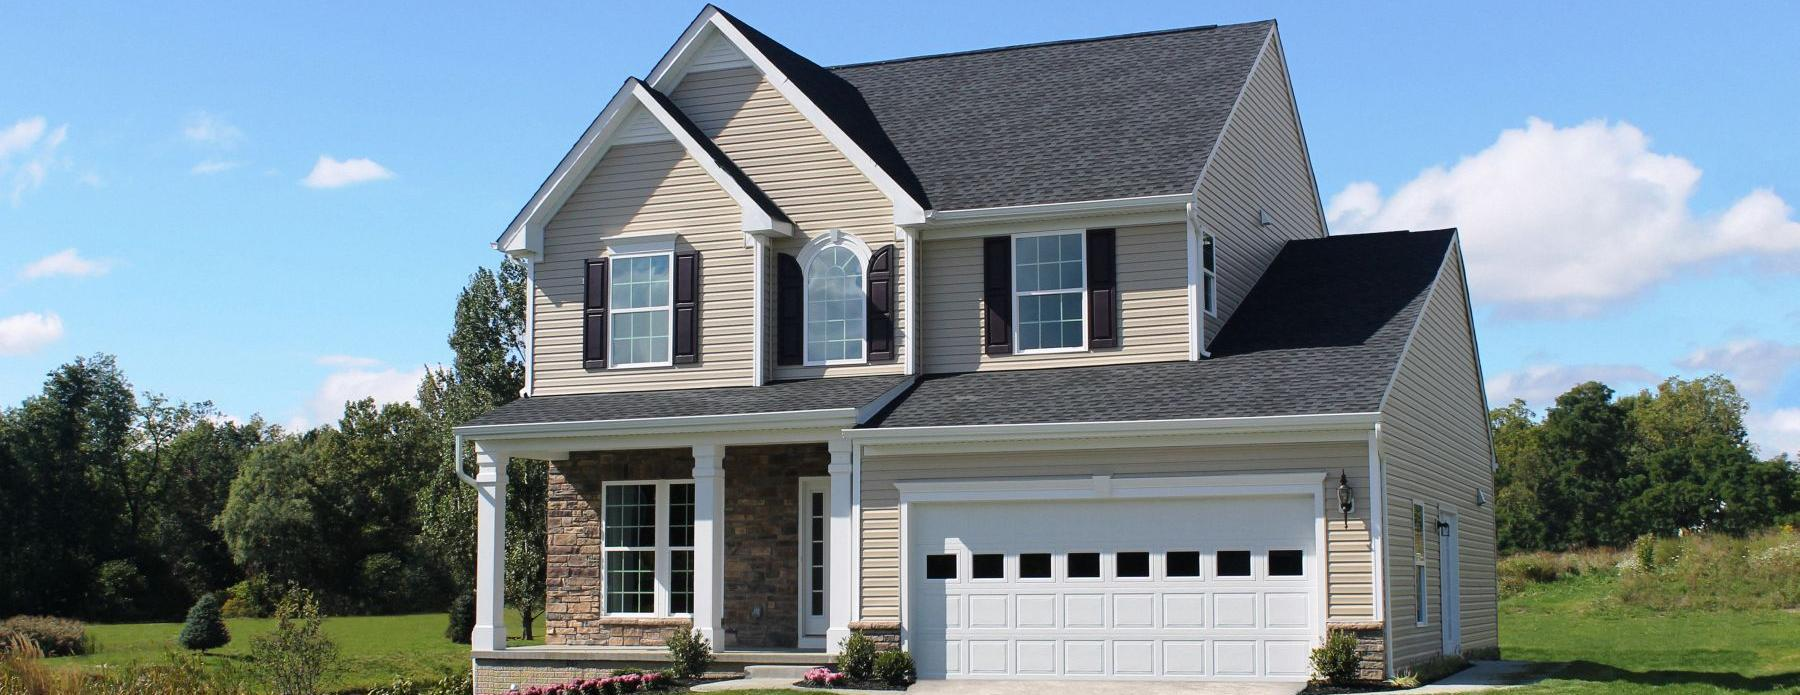 New Florence Home Model for sale at Marion Meadows in ...